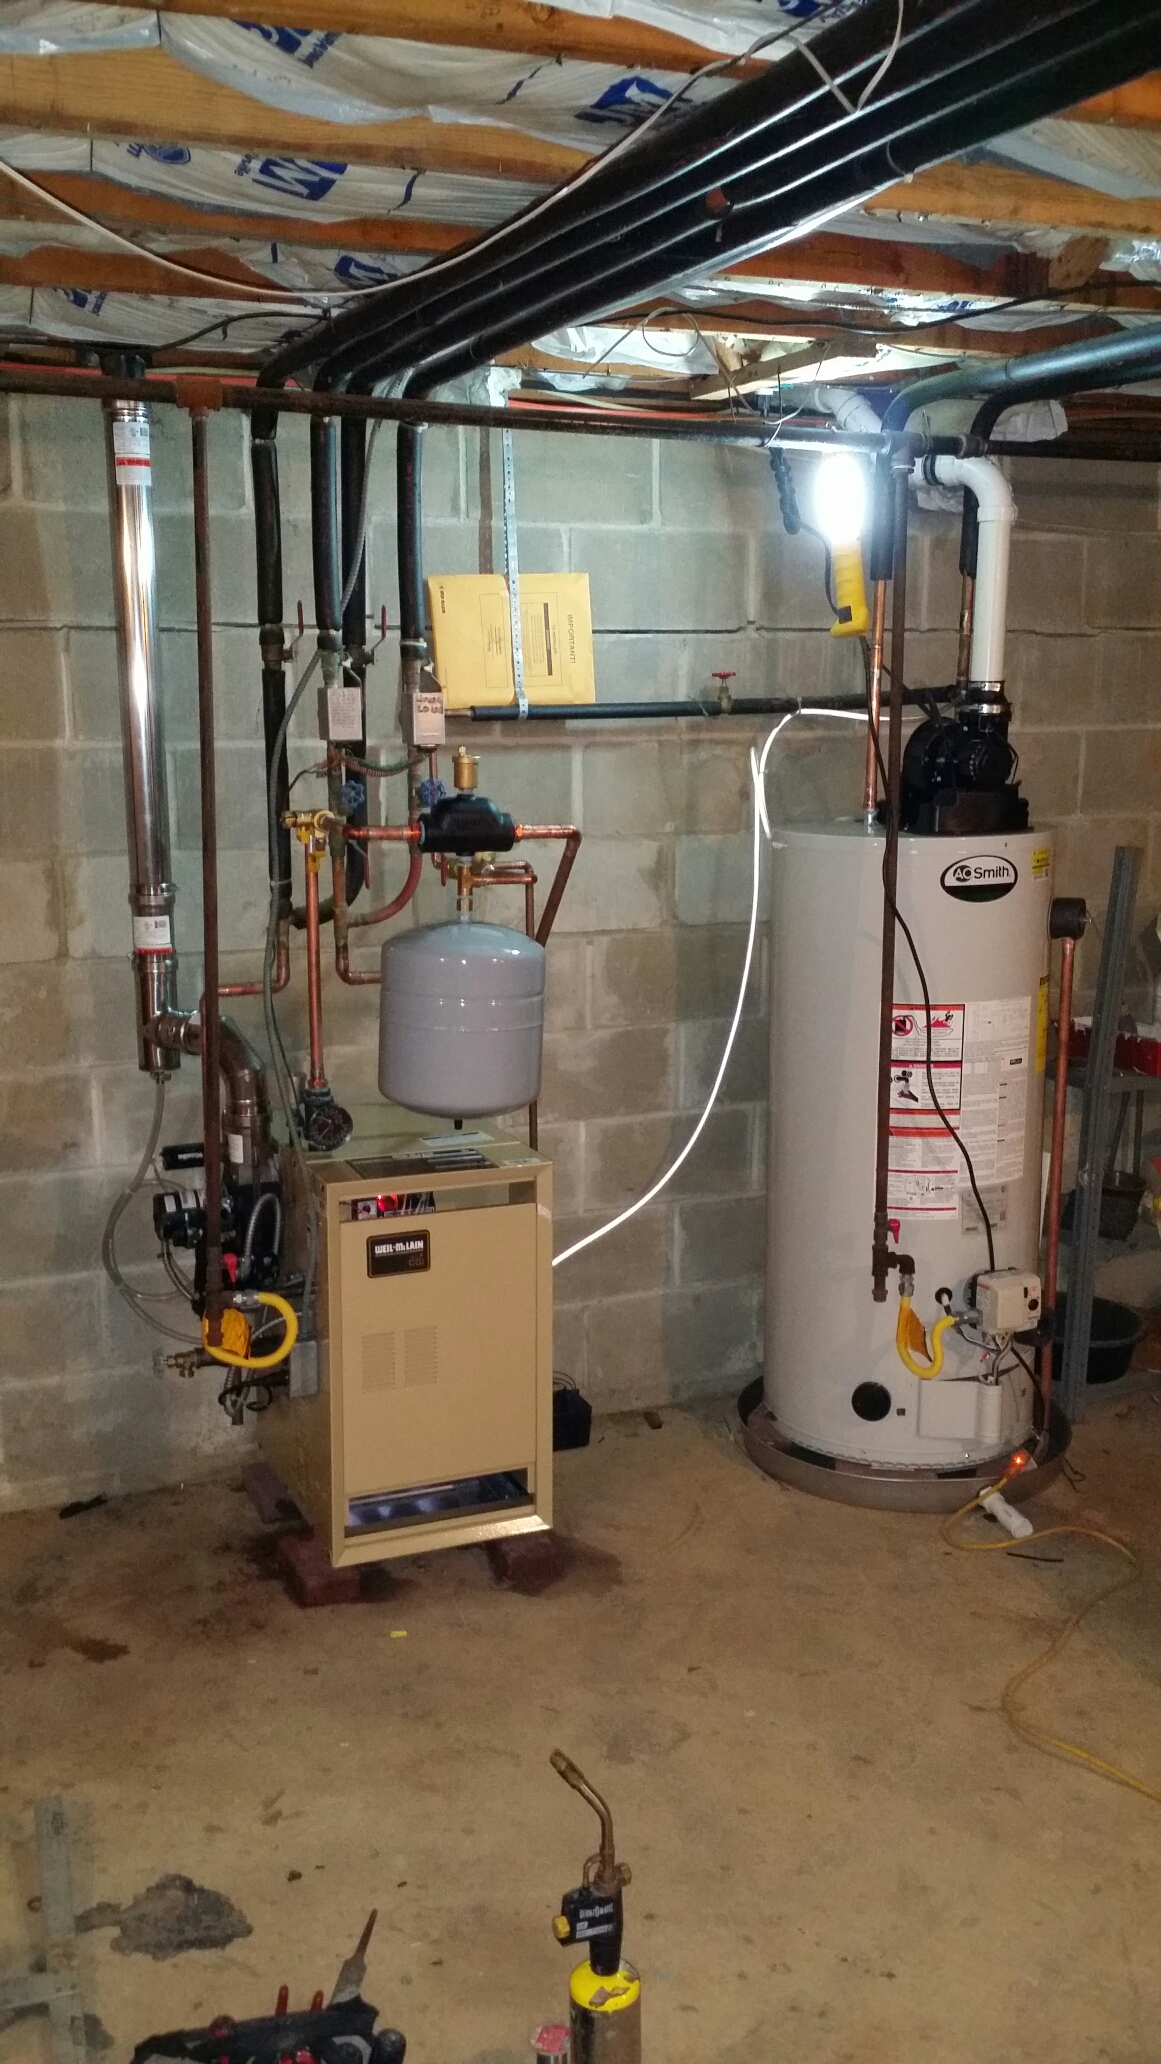 Toms River, NJ - New hot water boiler installation and hot water heater installation.  Install new gas fired Weil Mclain CGI5 boiler and A.O. Smith power vent water heater in Toms River NJ